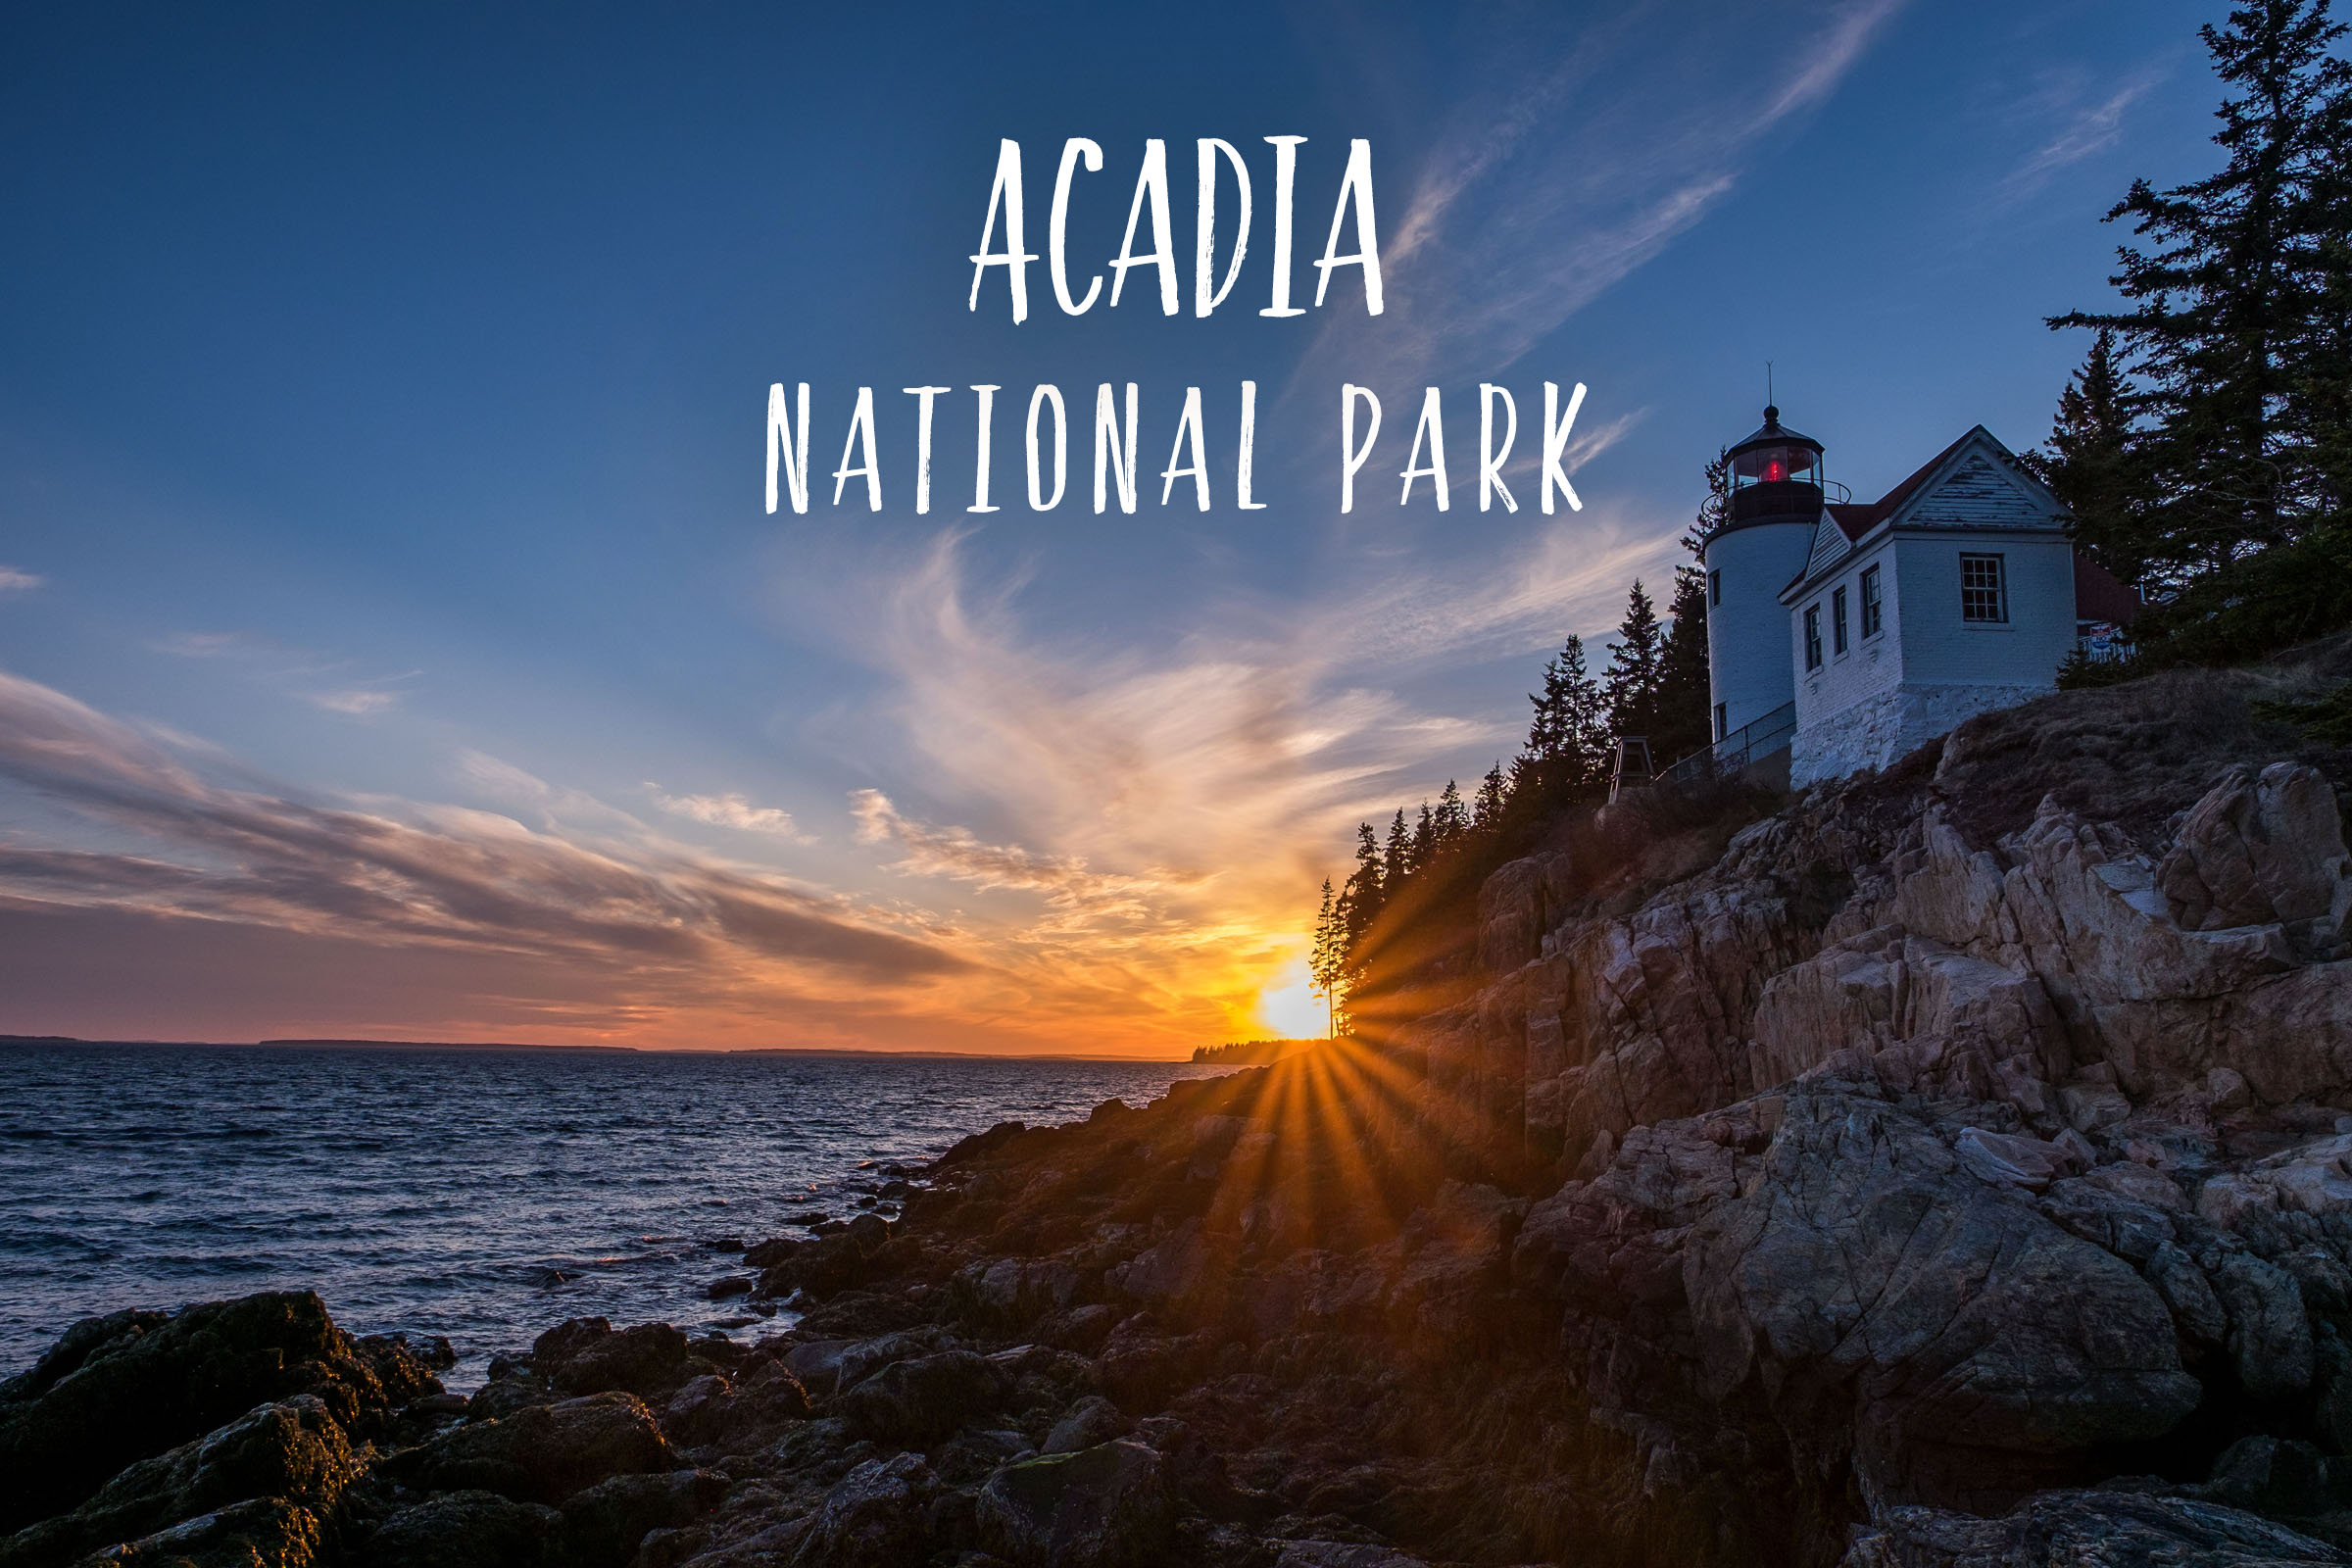 59in52_np-page_acadia.jpg